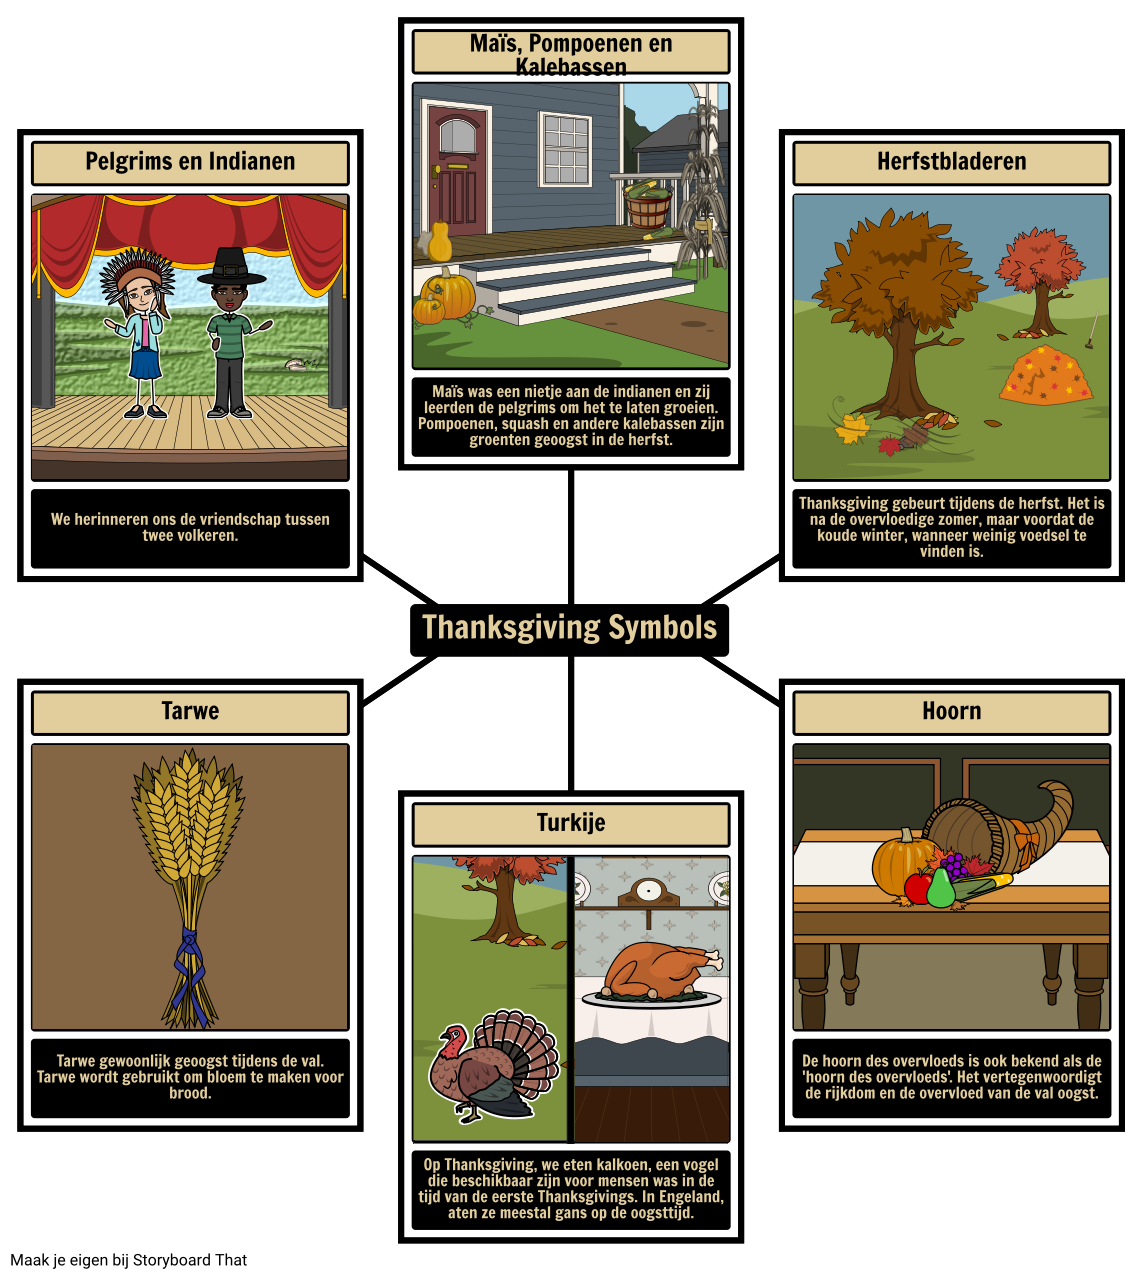 Thanksgiving - Symbolen